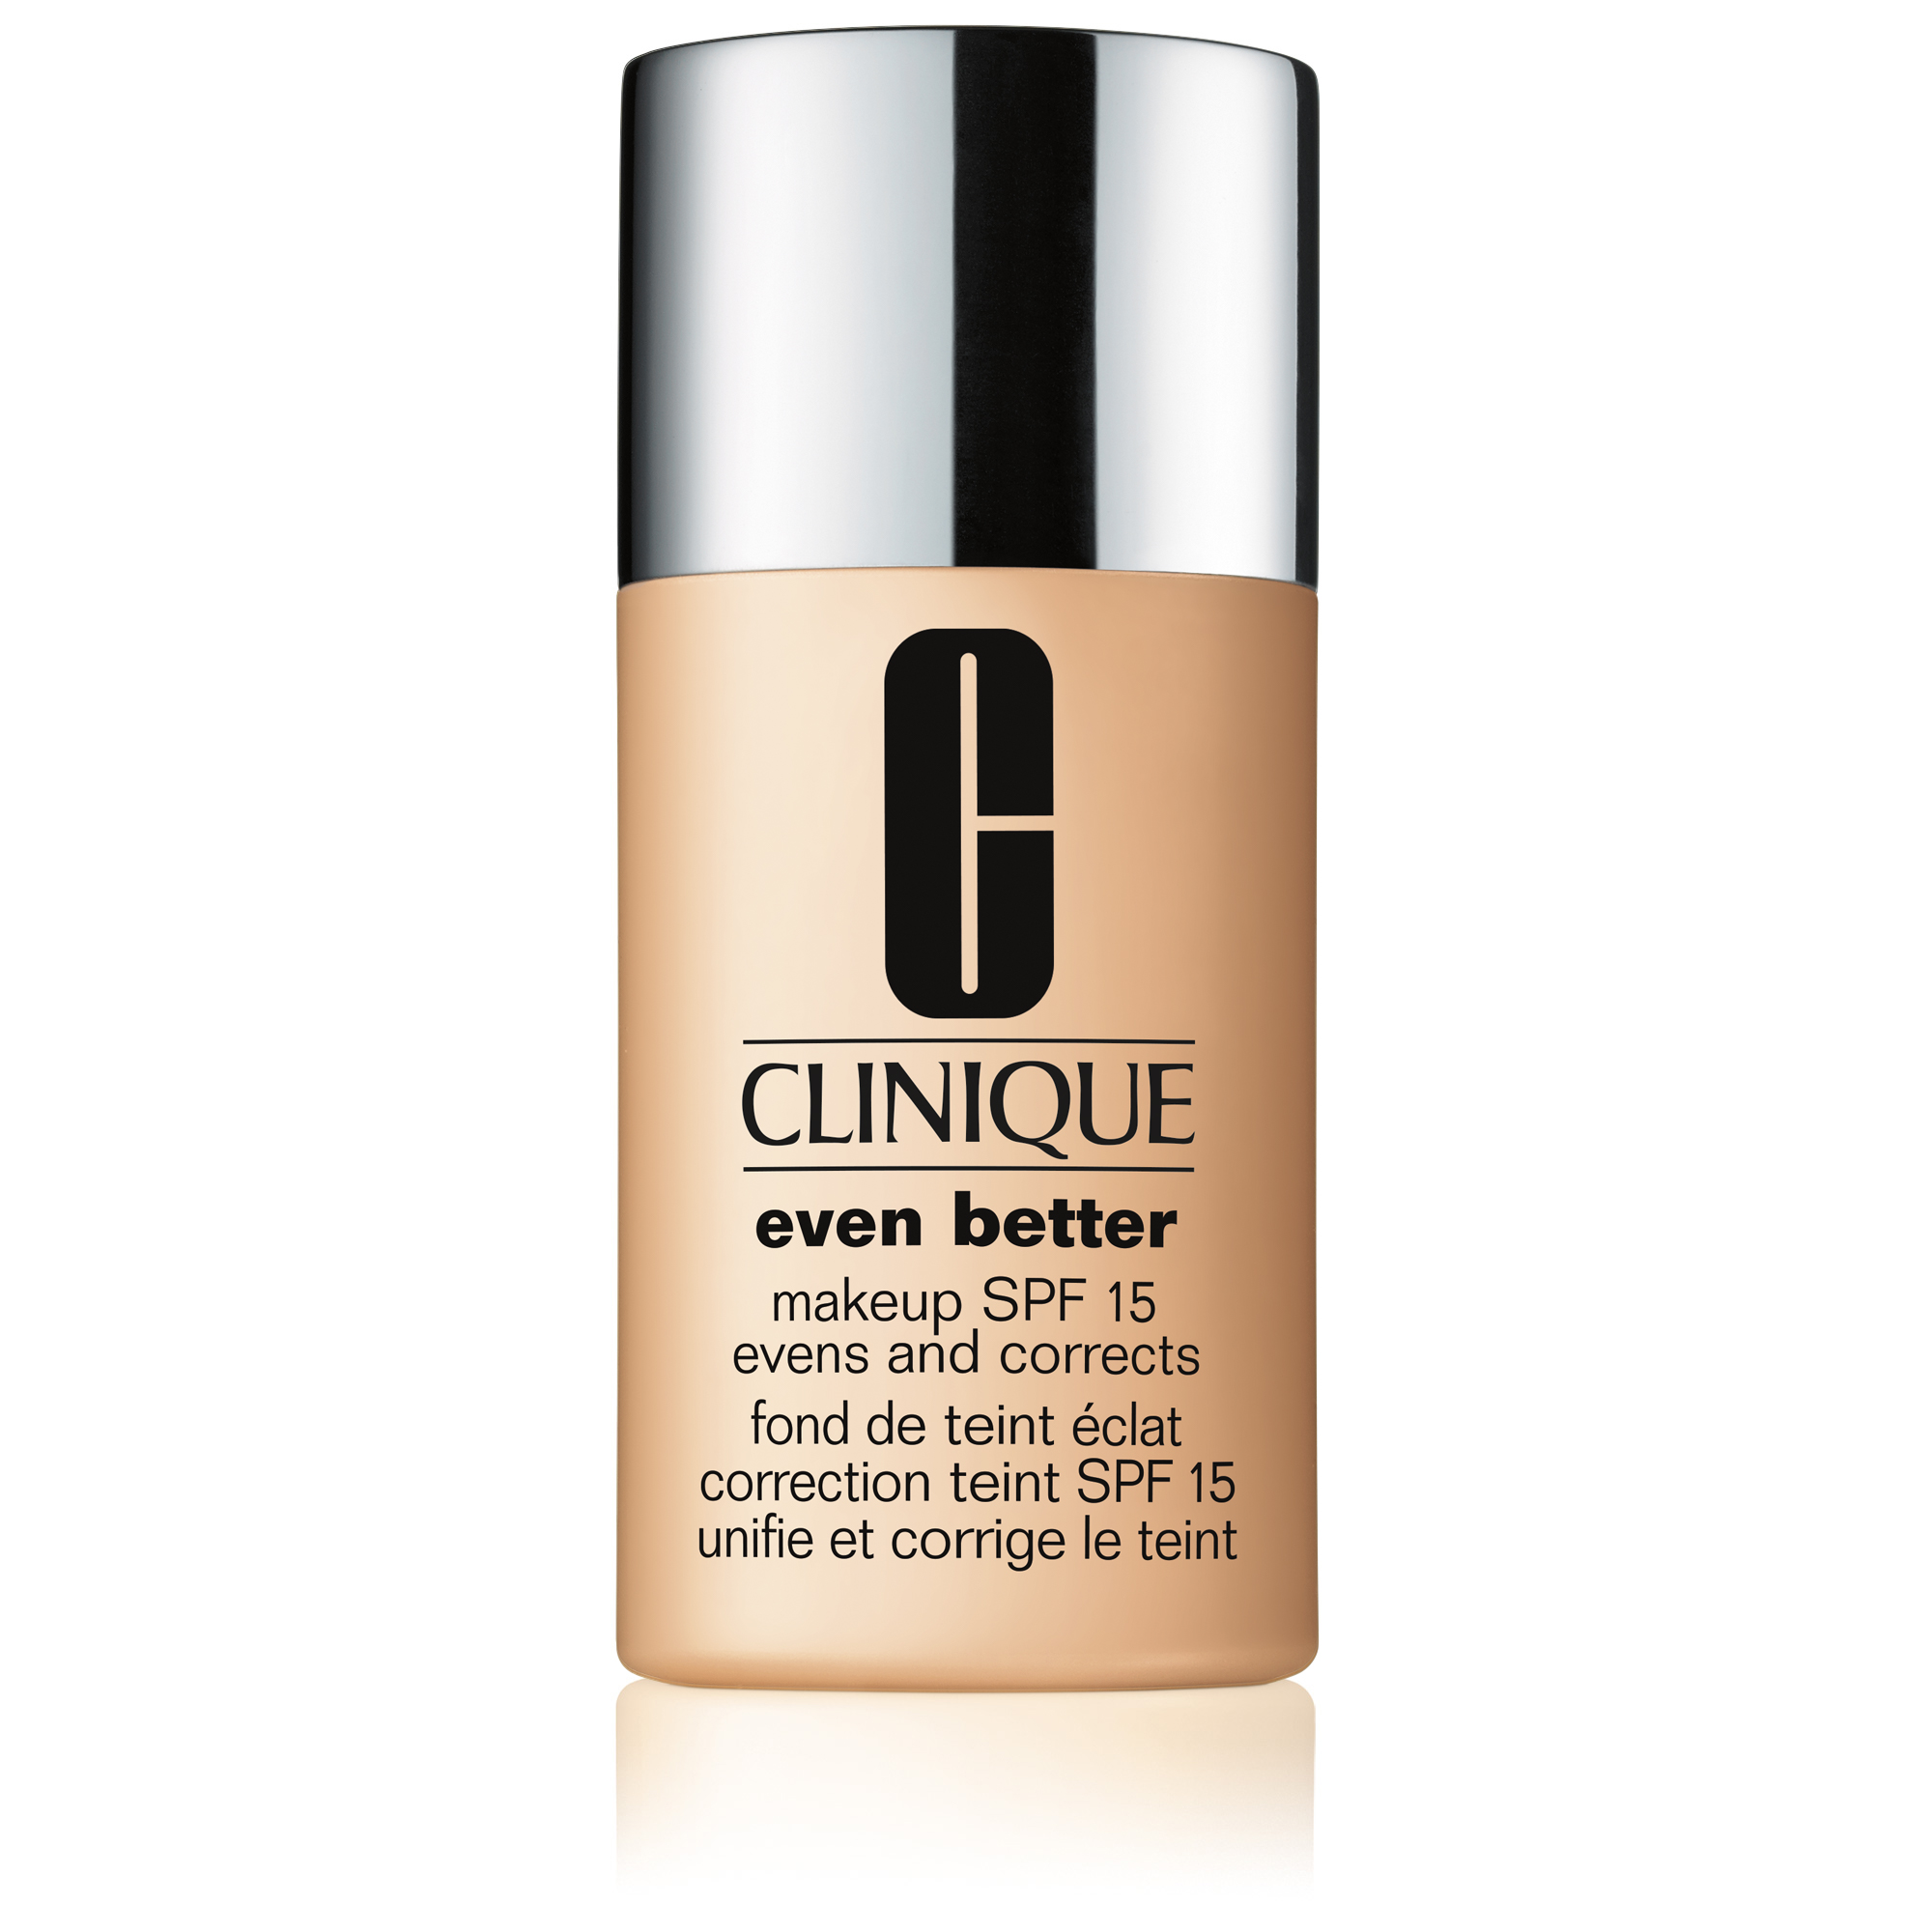 Even Better Makeup Shade Extension CN 52 Neutral